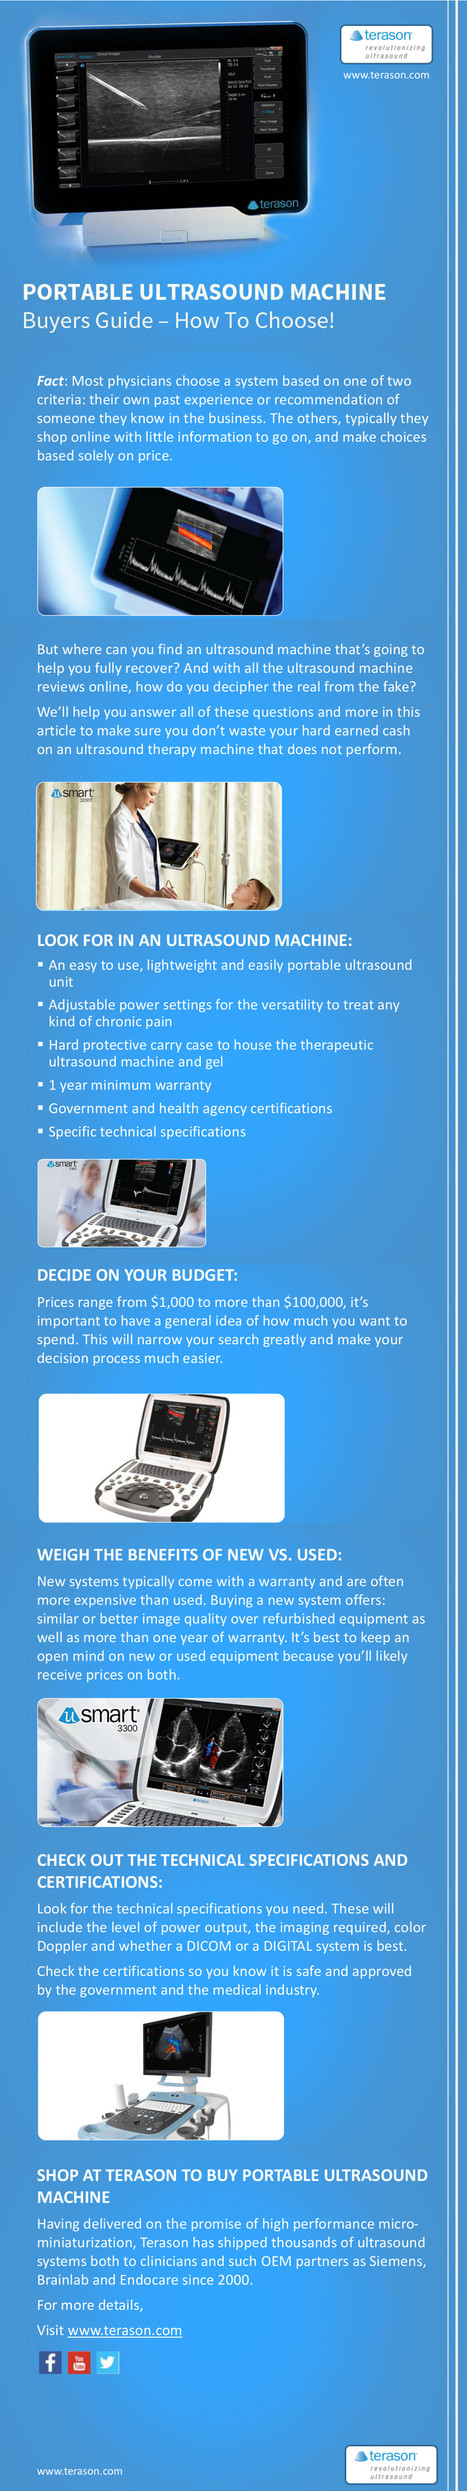 Buyers Guide for Portable Ultrasound Machine | Infographic Collection | Scoop.it